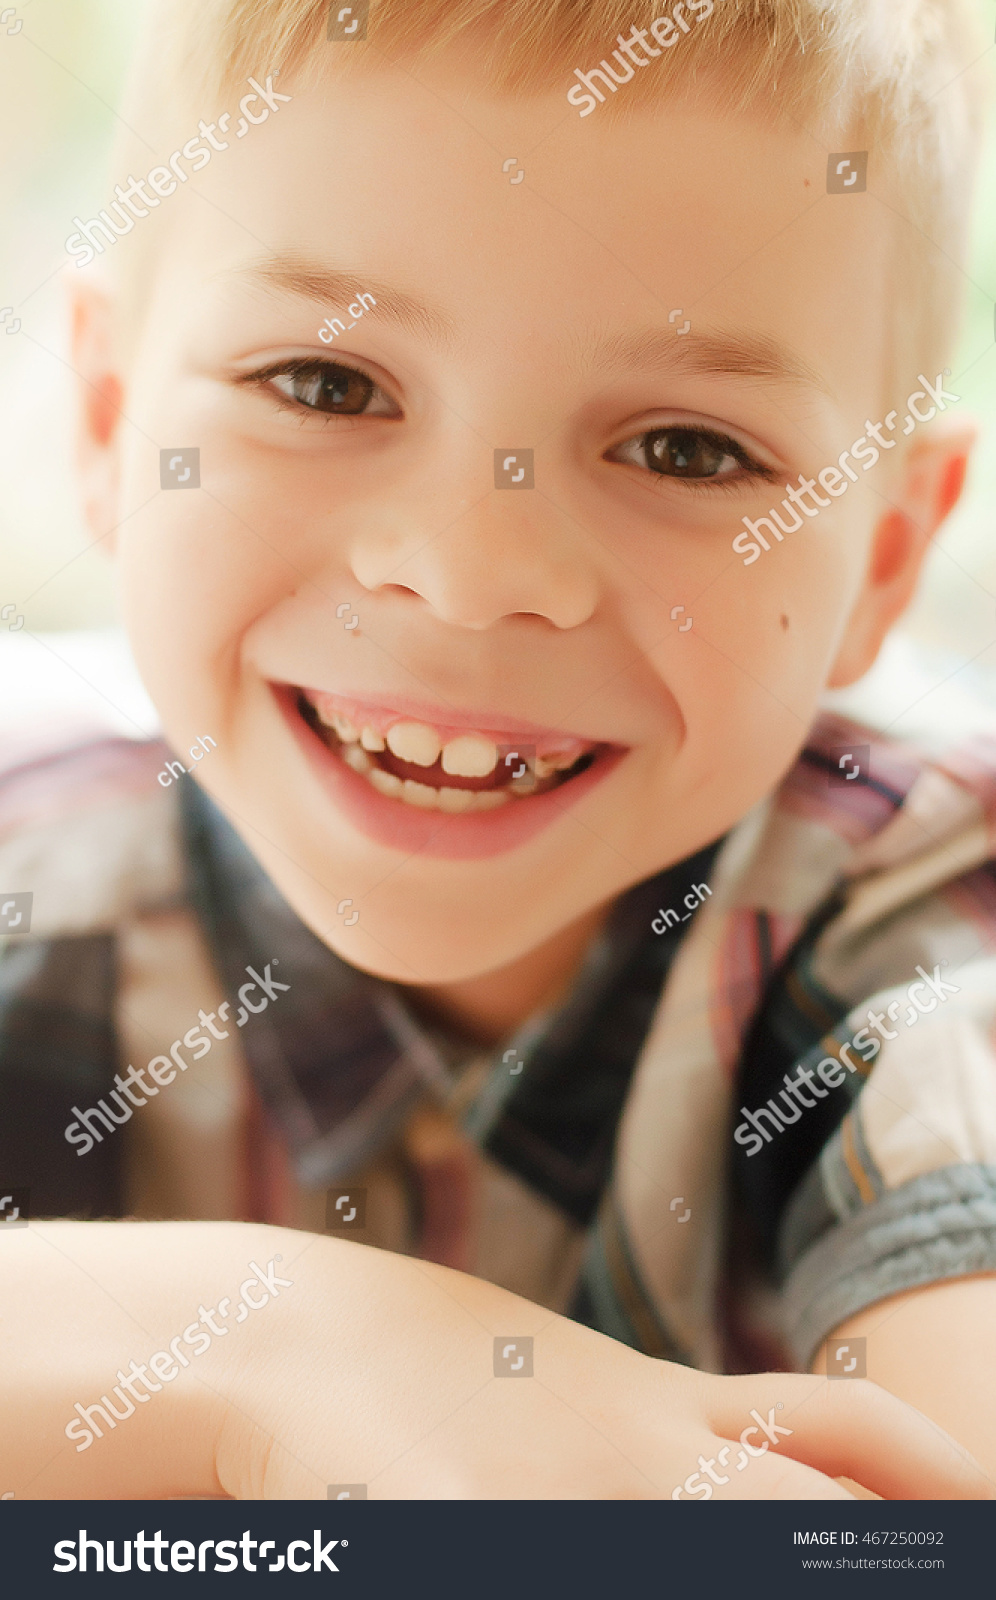 childs happy face portrait cute kid stock photo (100% legal